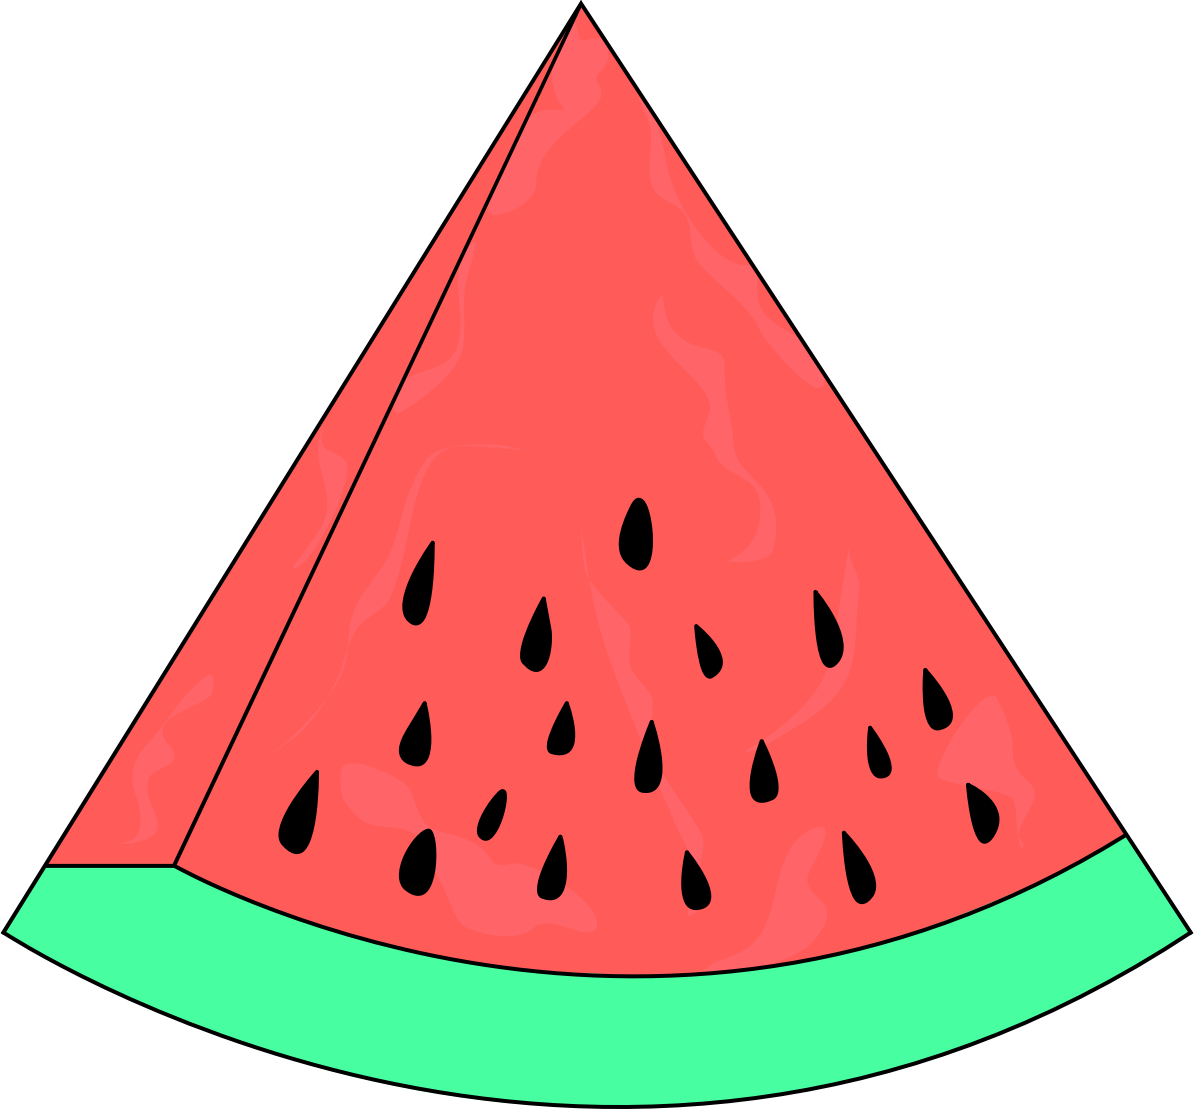 Of watermelon clip art for clipart cliparts you